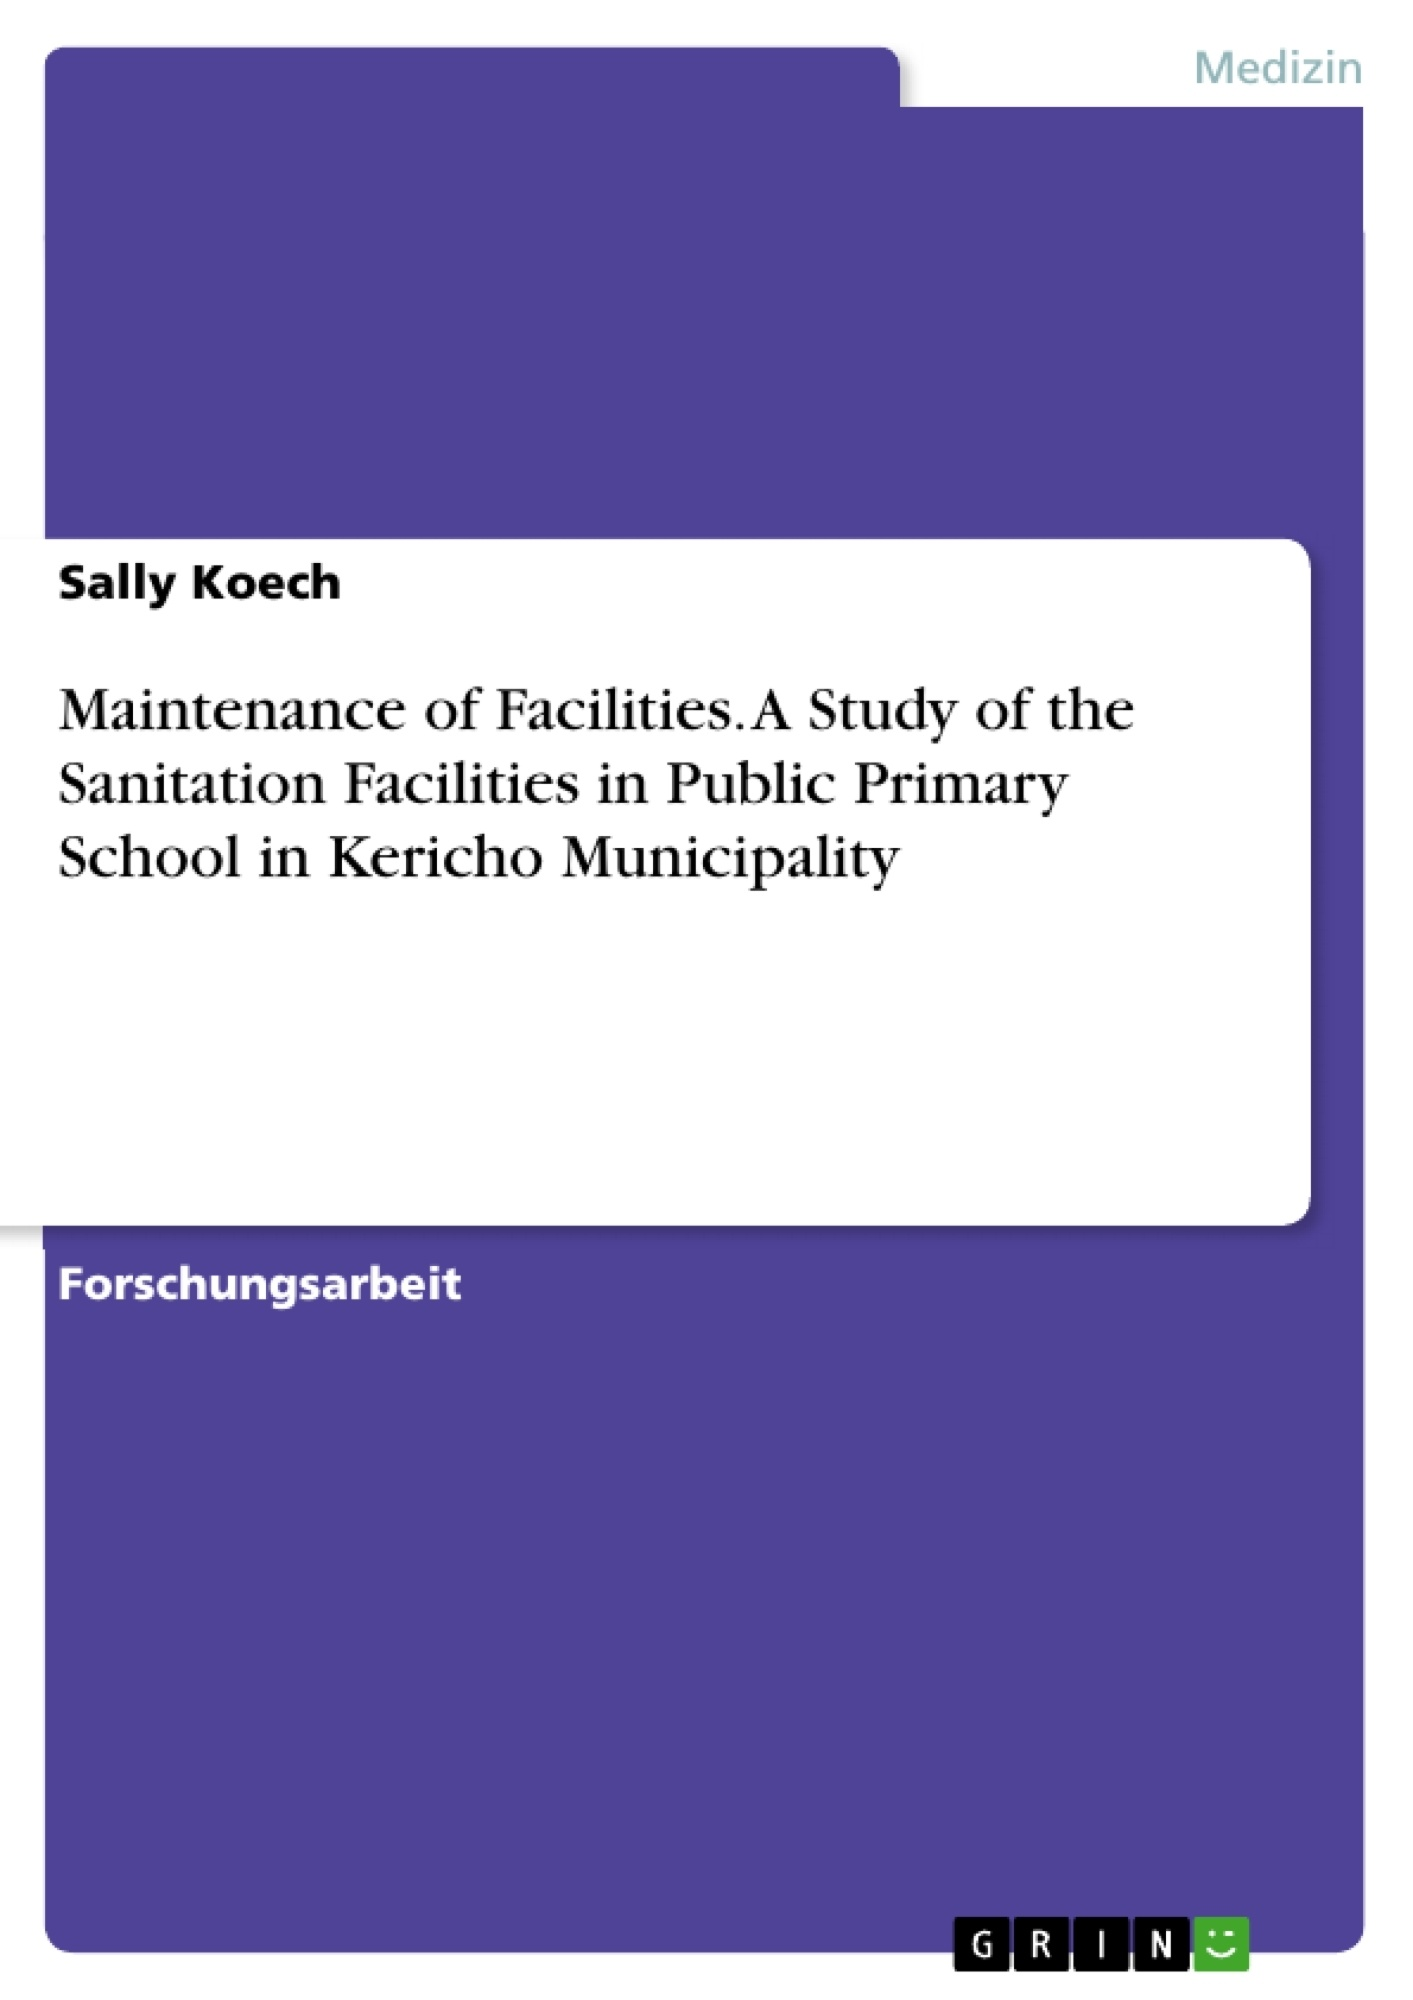 Titel: Maintenance of Facilities. A Study of the Sanitation Facilities in Public Primary School  in Kericho Municipality